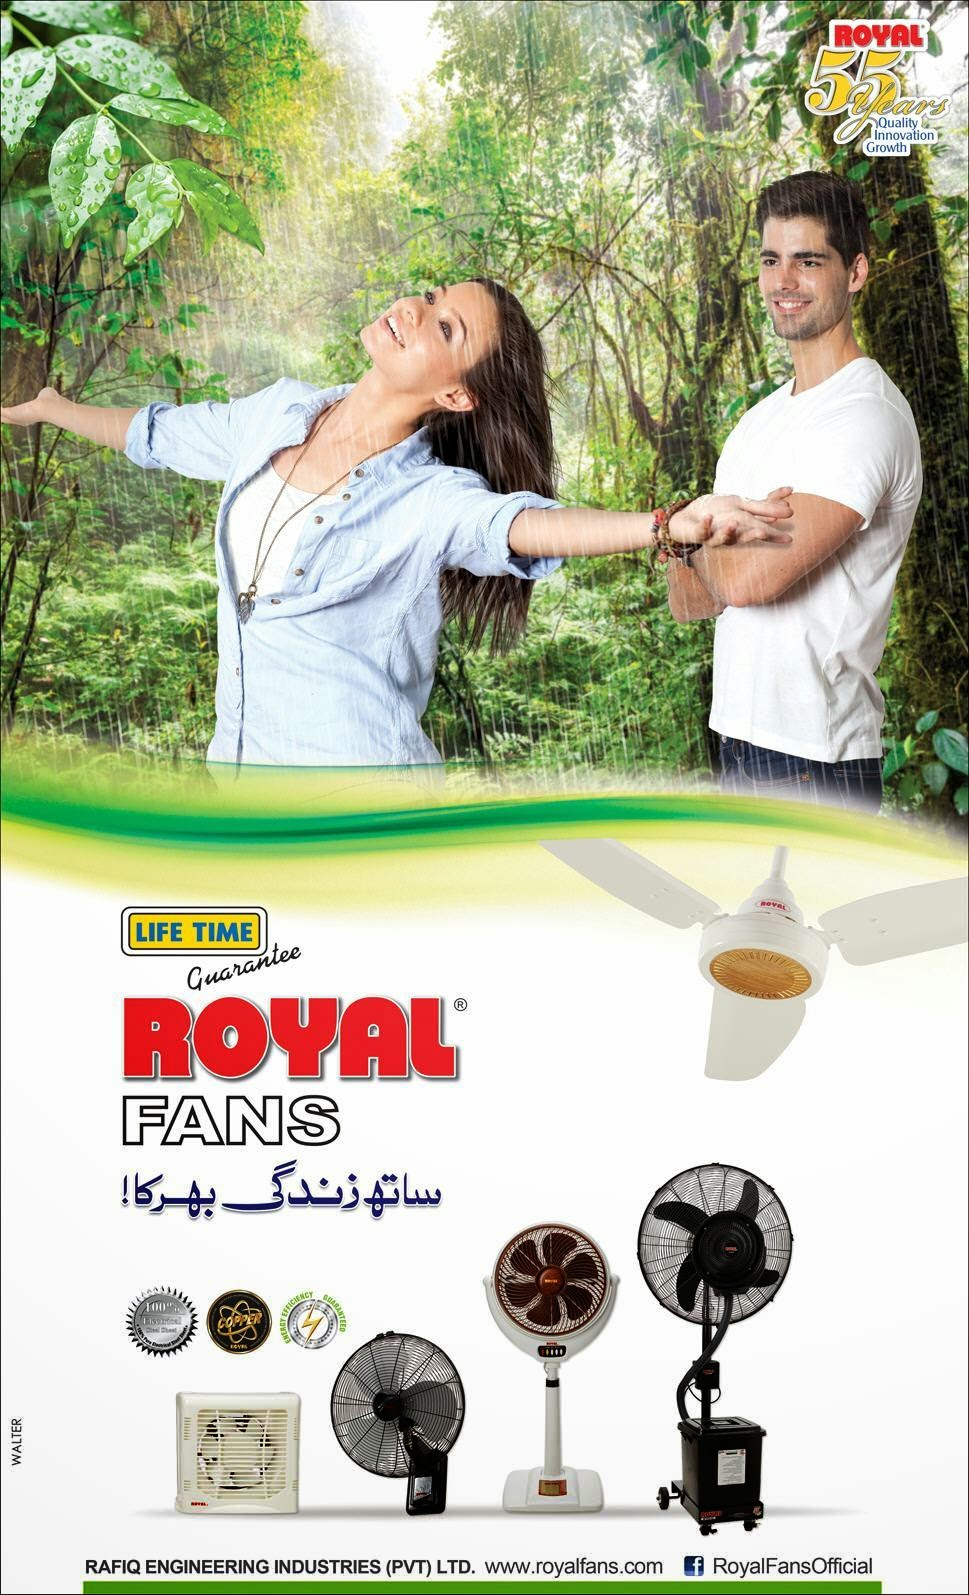 Royal Fan Price in Pakistan 2014